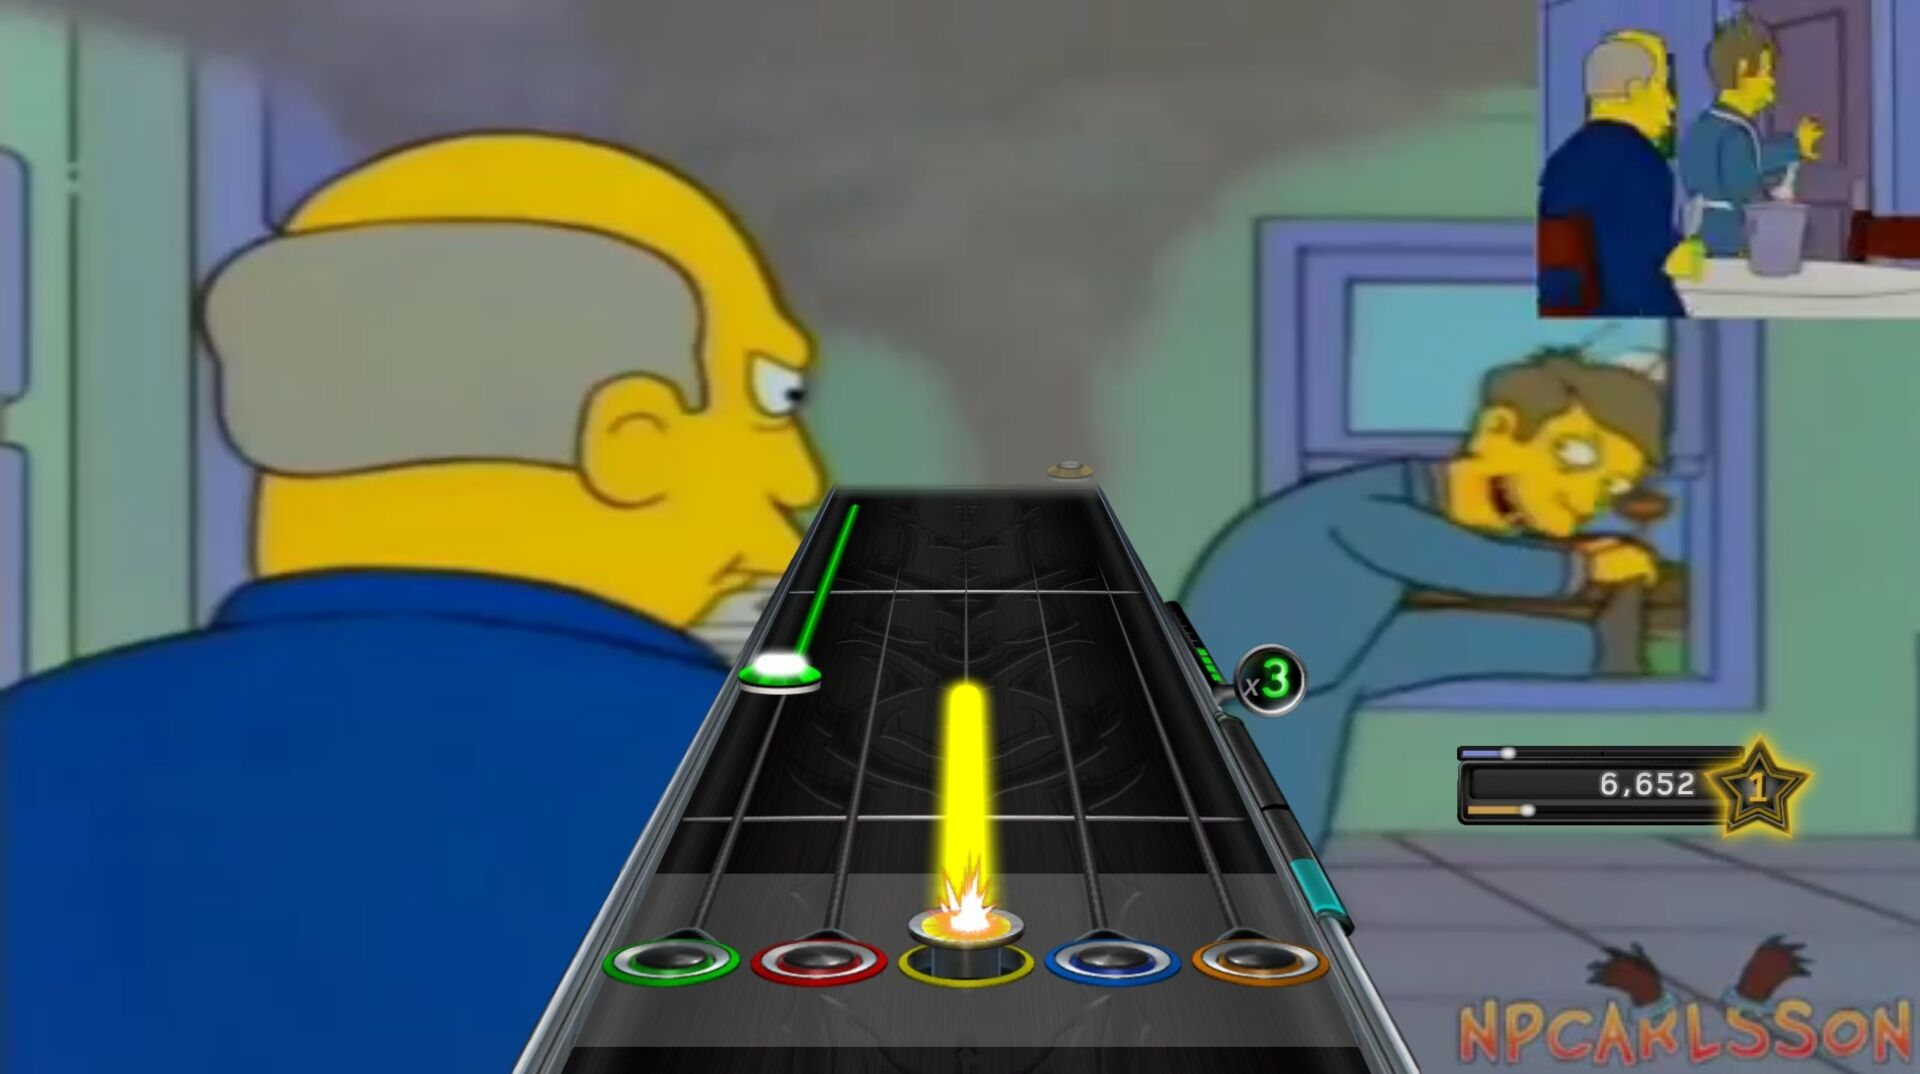 The spirit of Guitar Hero lives on in a bizarre community